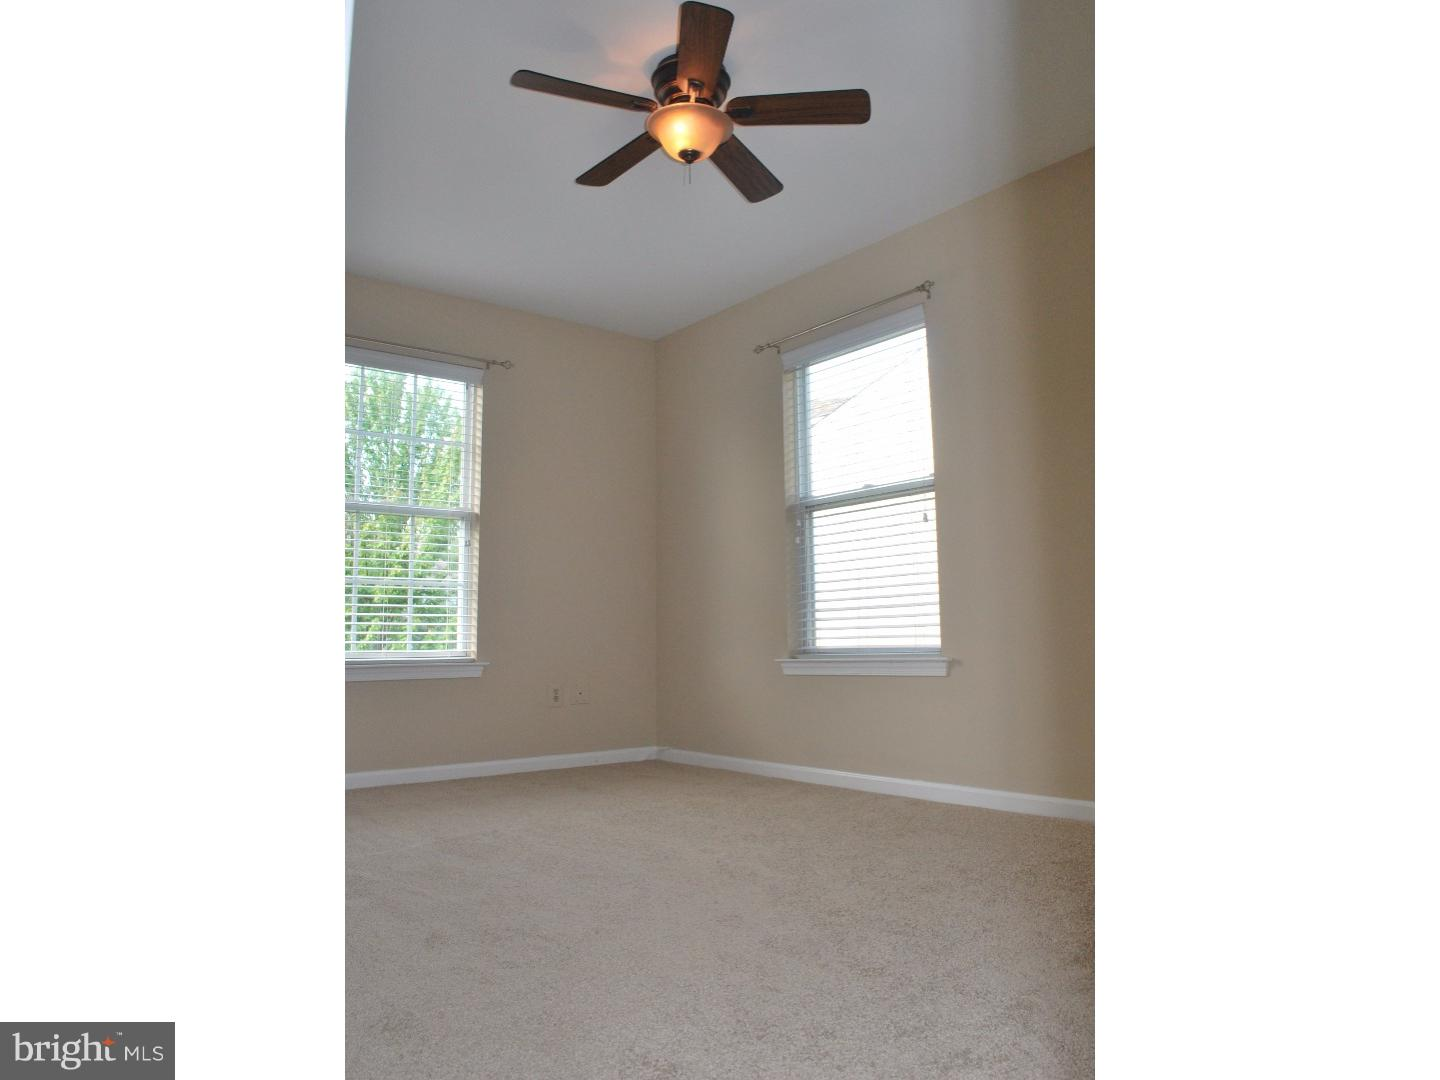 Additional photo for property listing at 4999 ESTHER REED Drive  Doylestown, Pennsylvania 18902 United States